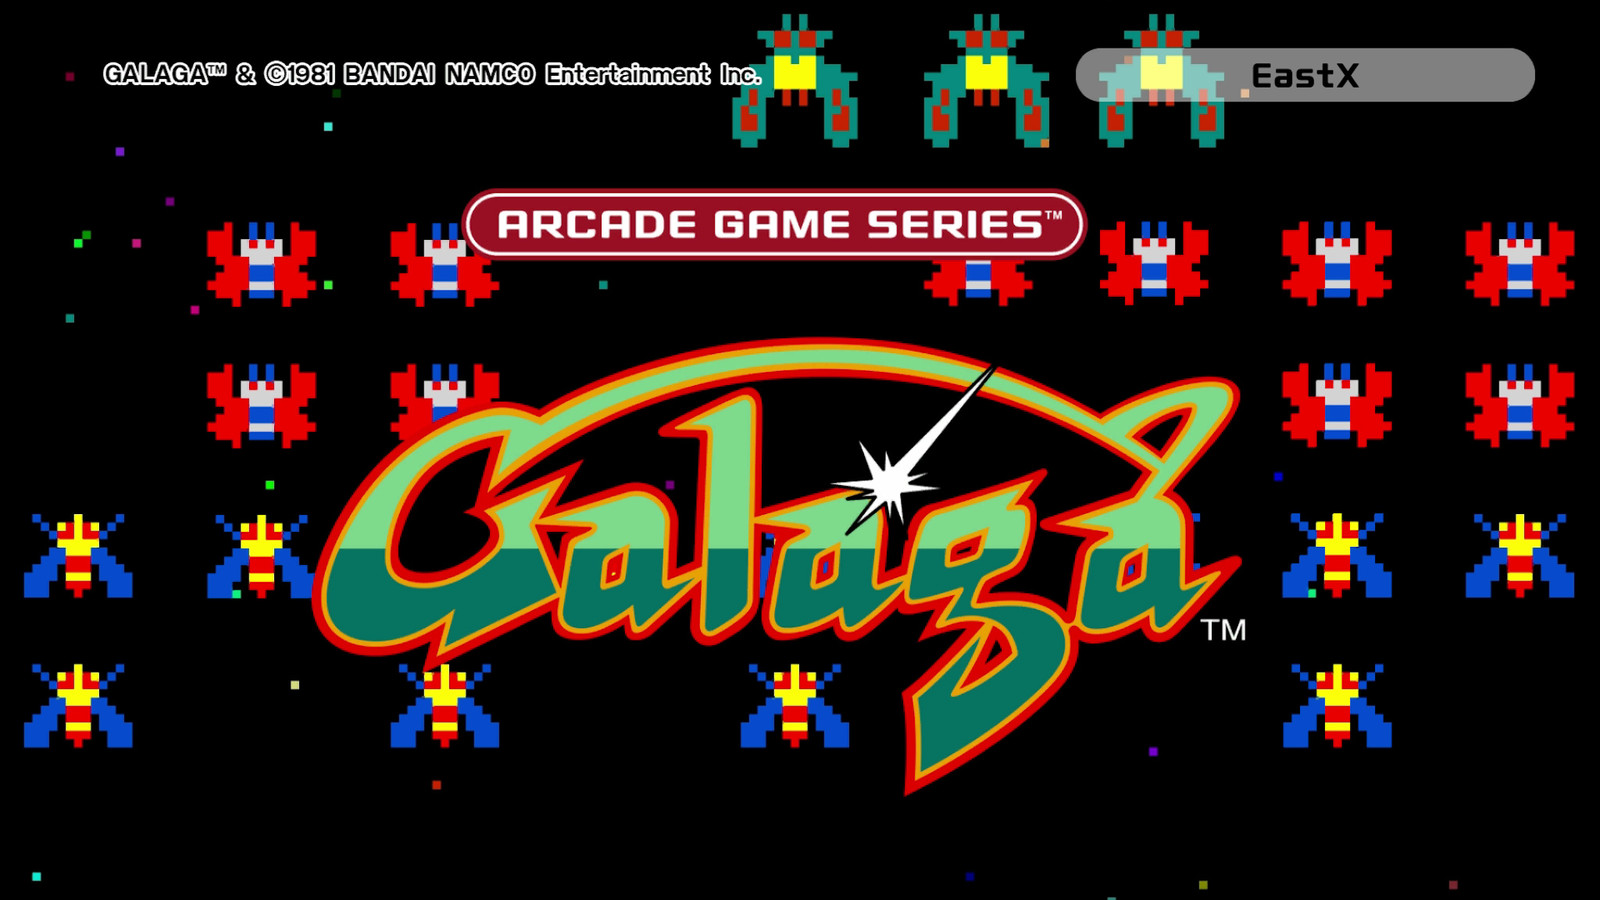 Galaga HD Wallpapers and Background Images   stmednet 1600x900